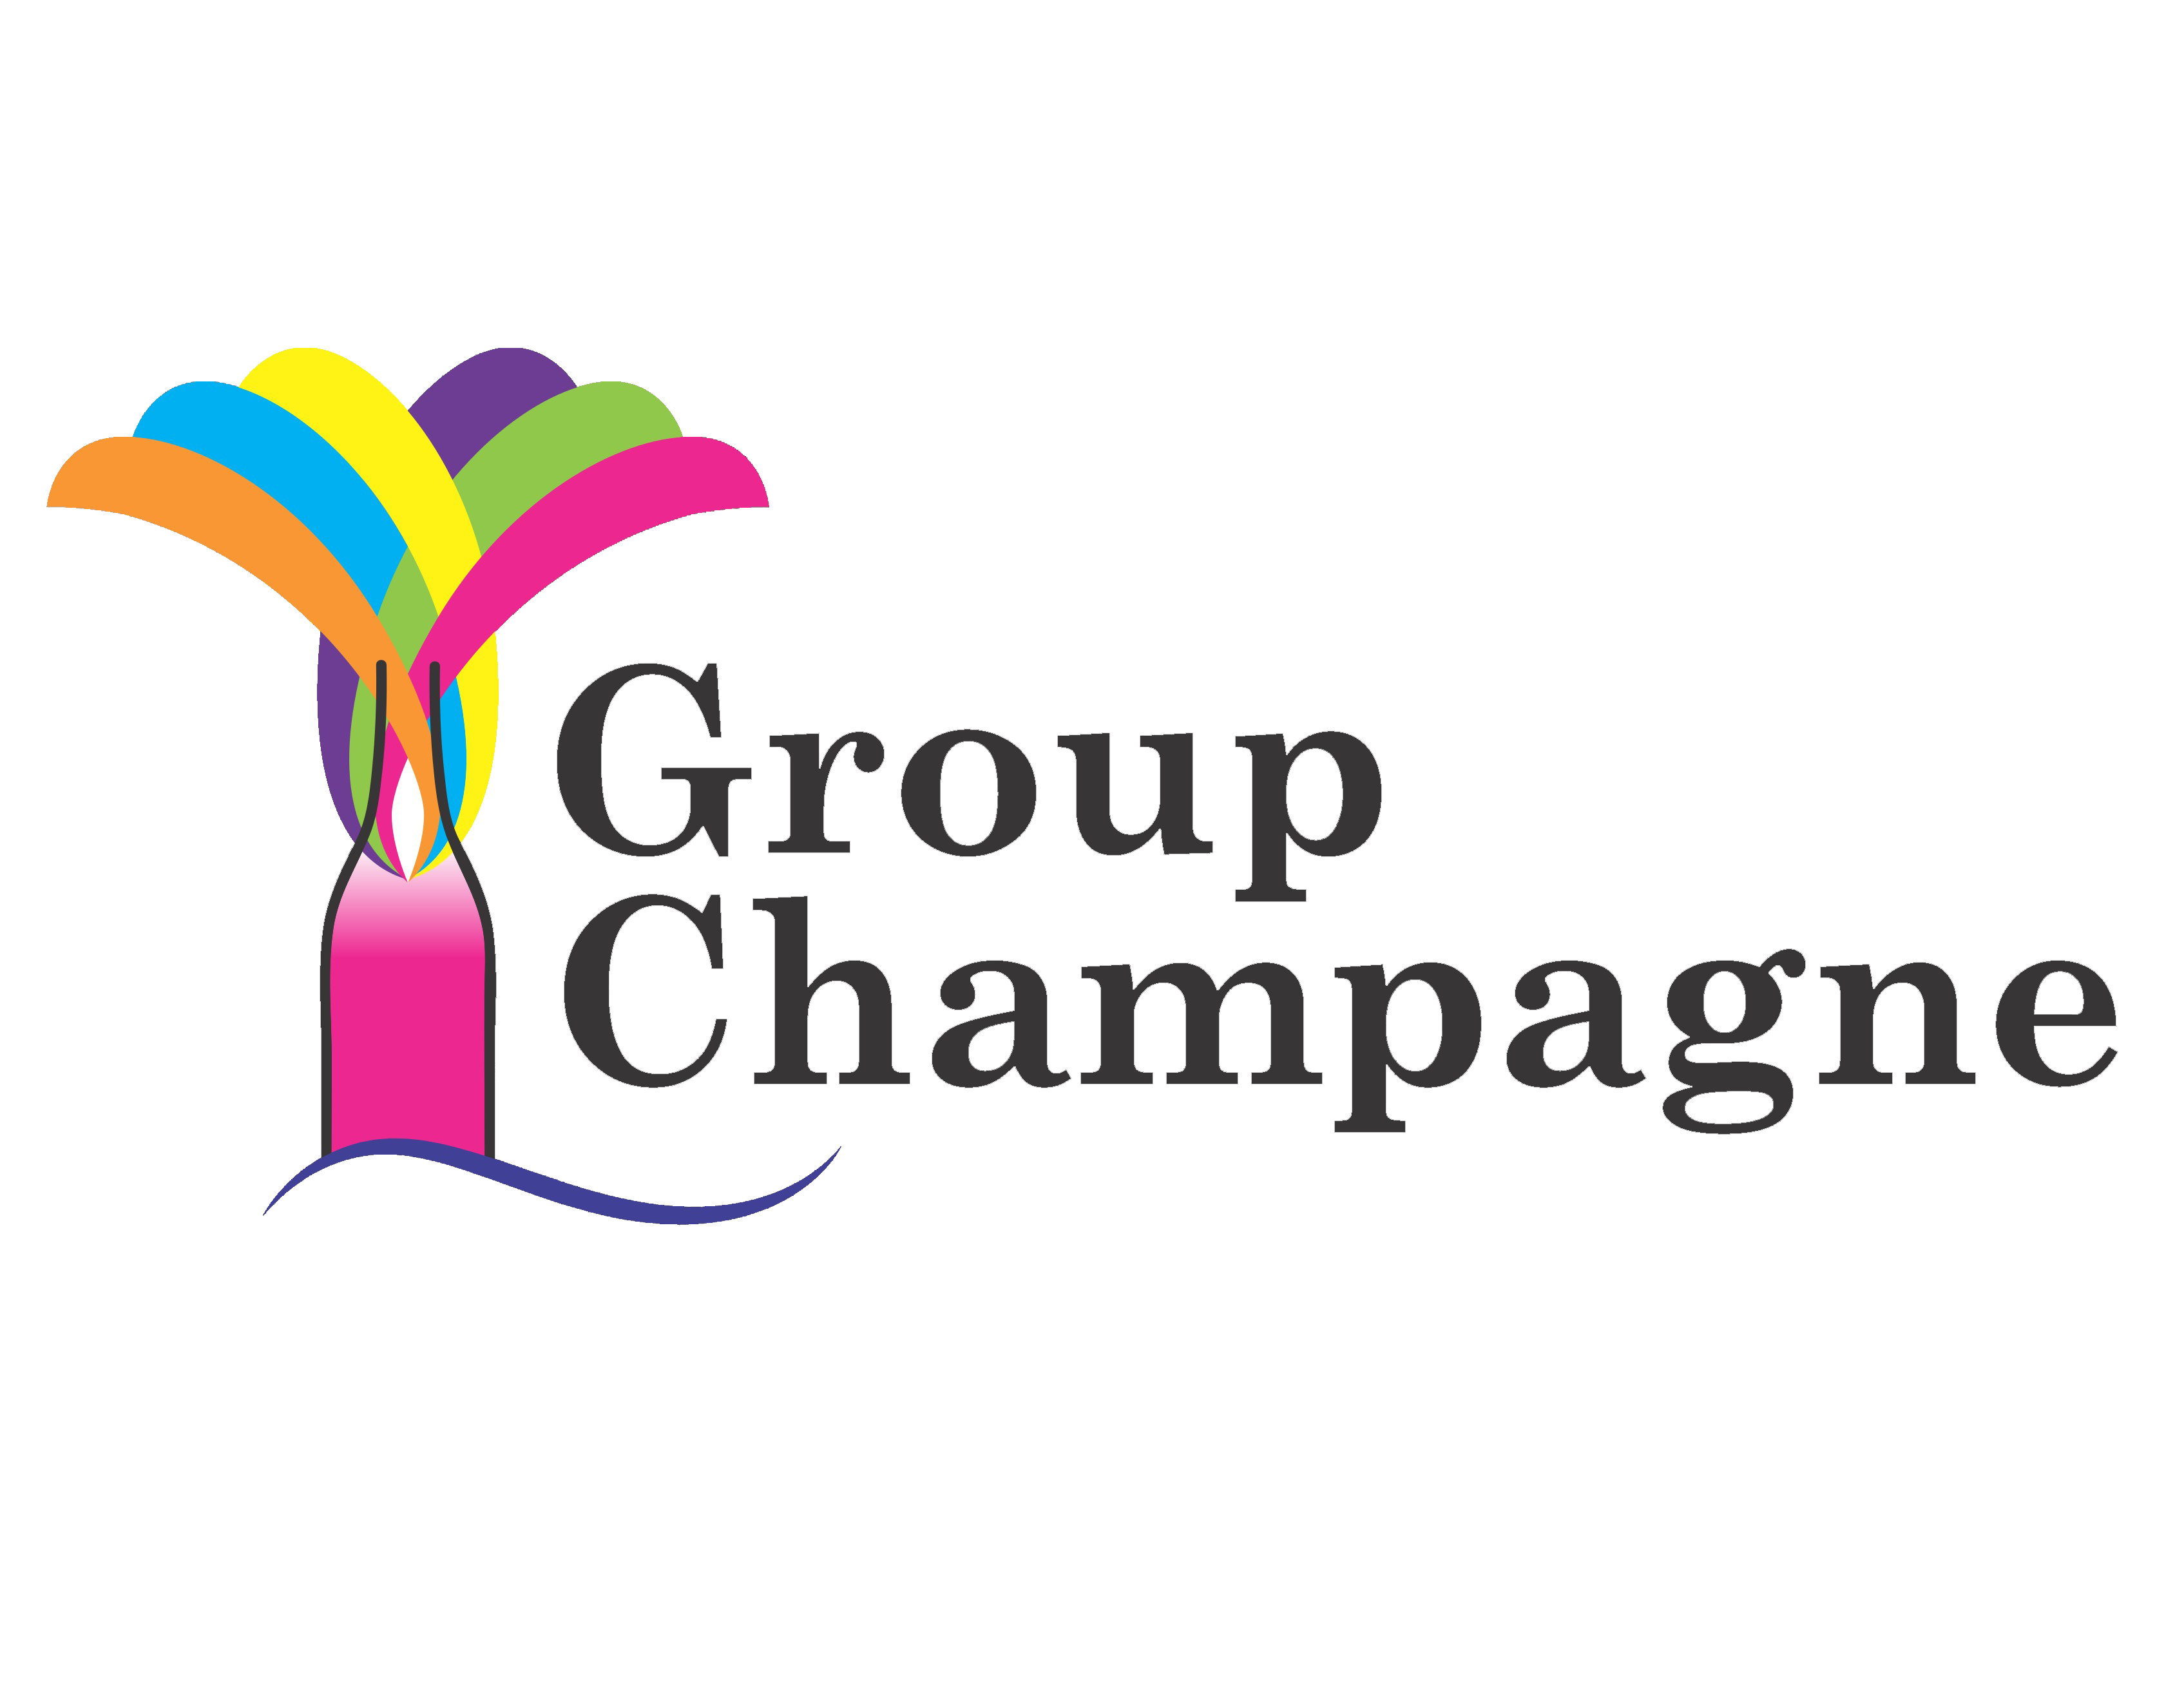 Champagne_Logo_S